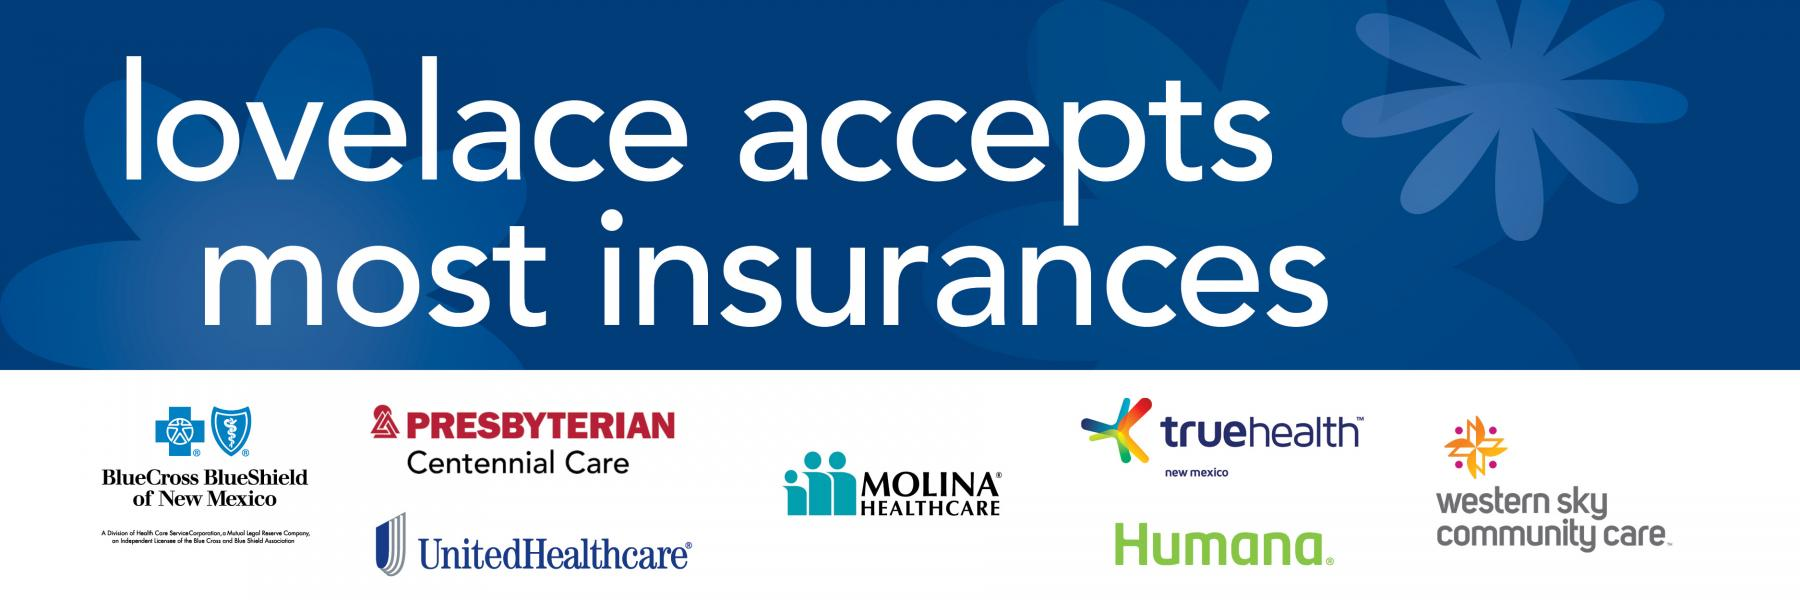 Lovelace Accepts Most Insurances